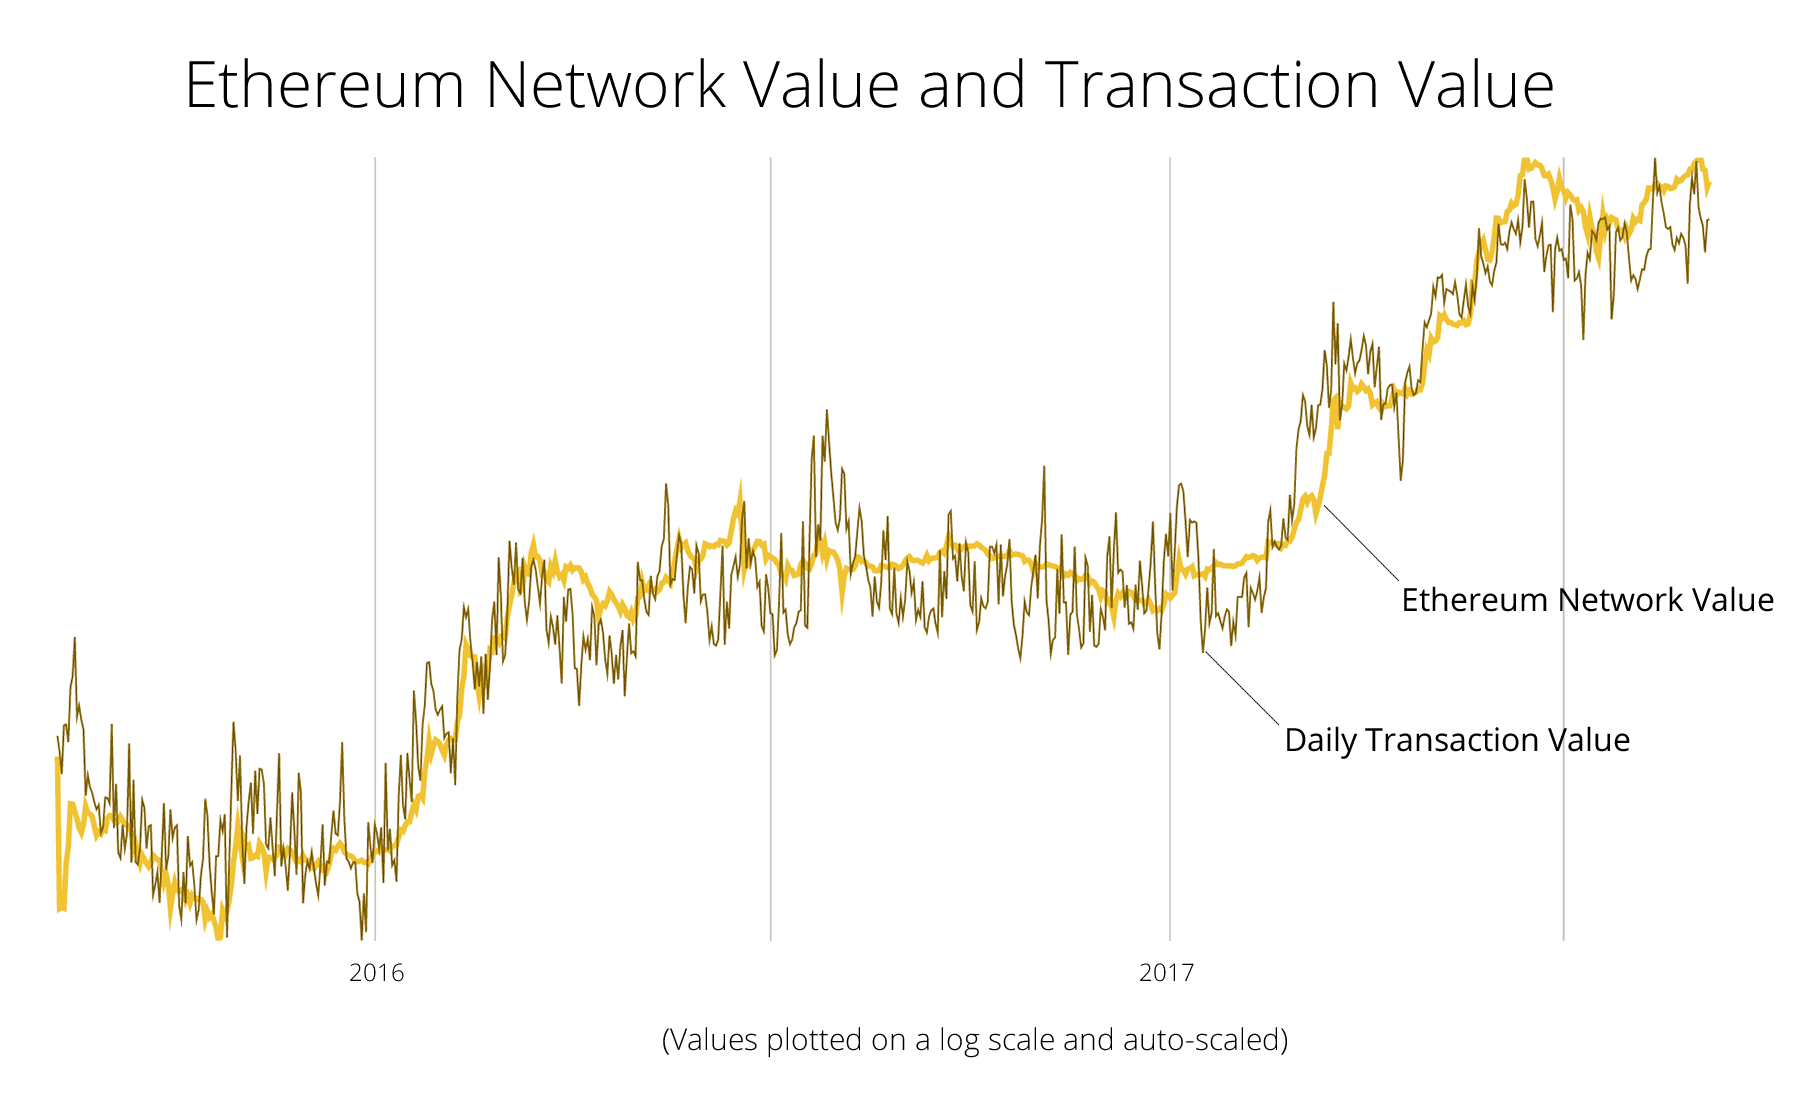 Ethereum Transaction Value and Network Valuation